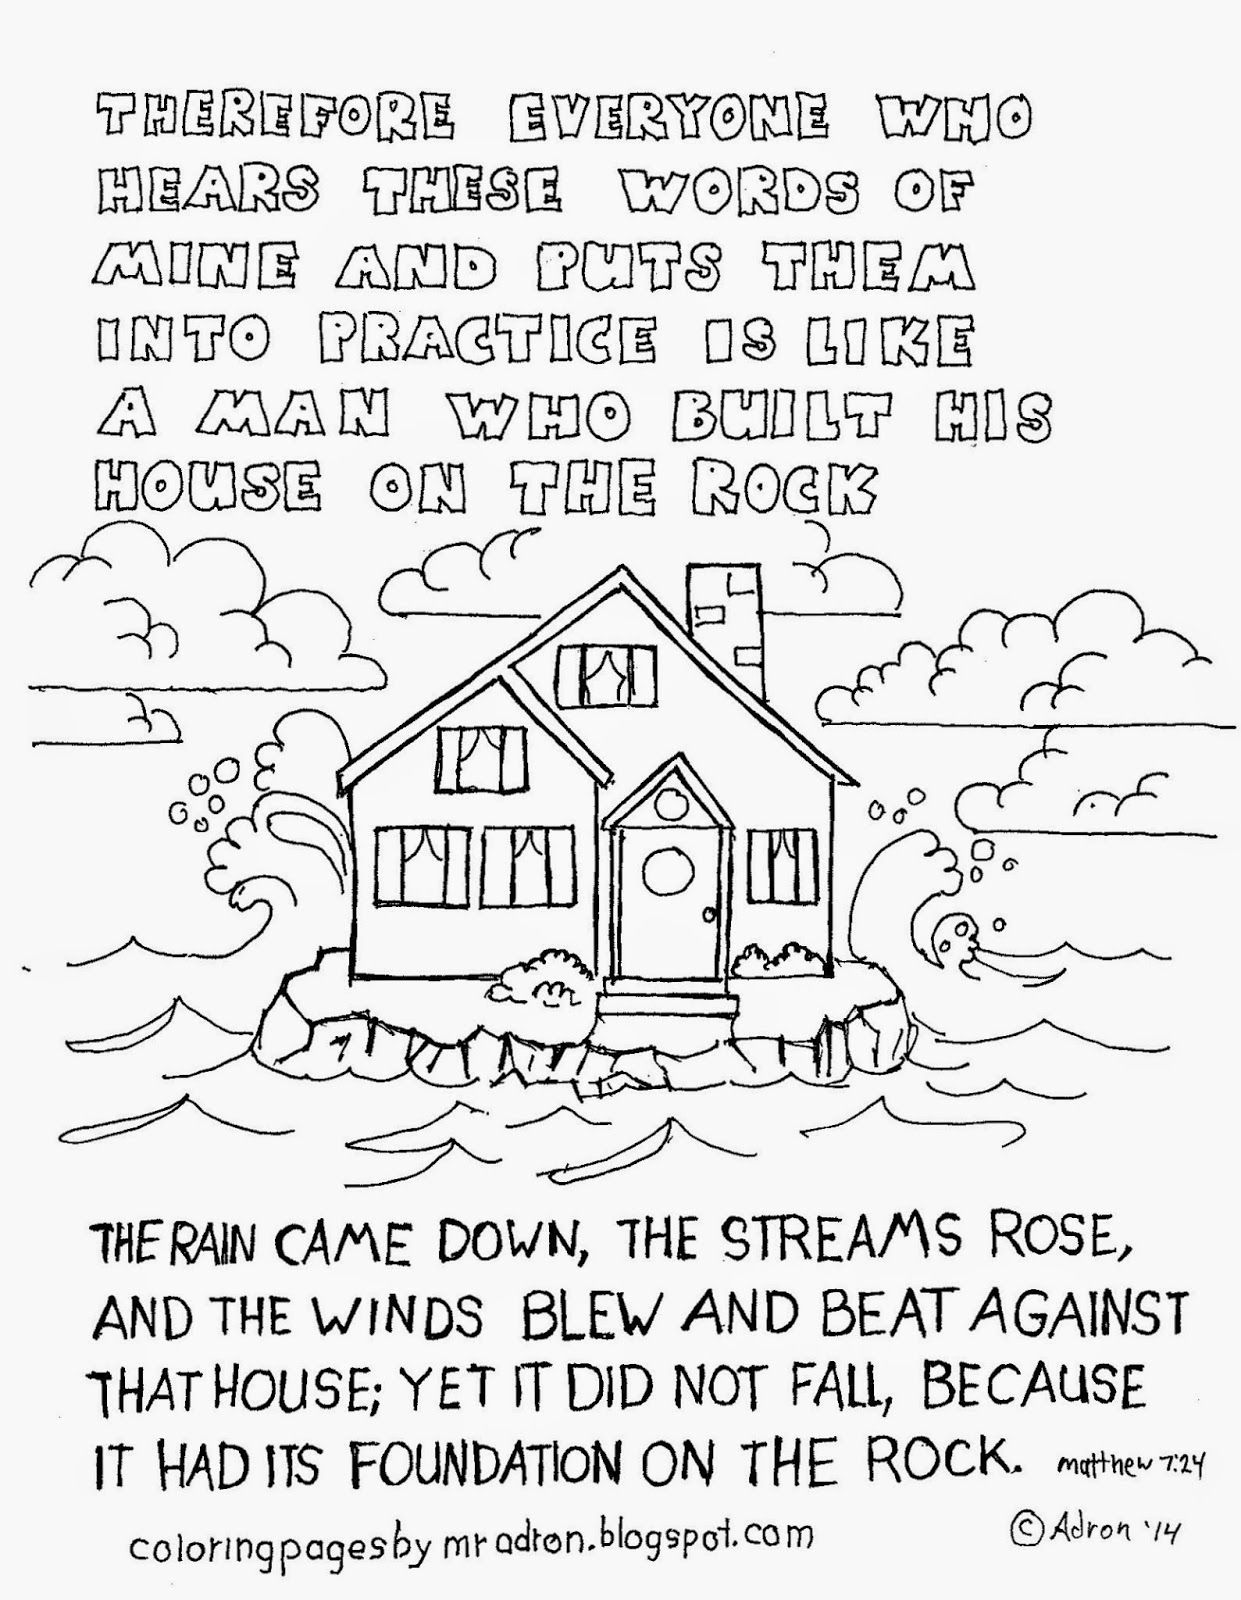 Coloring pages 24 - Coloring Pages For Kids By Mr Adron Matthew 7 24 The Man